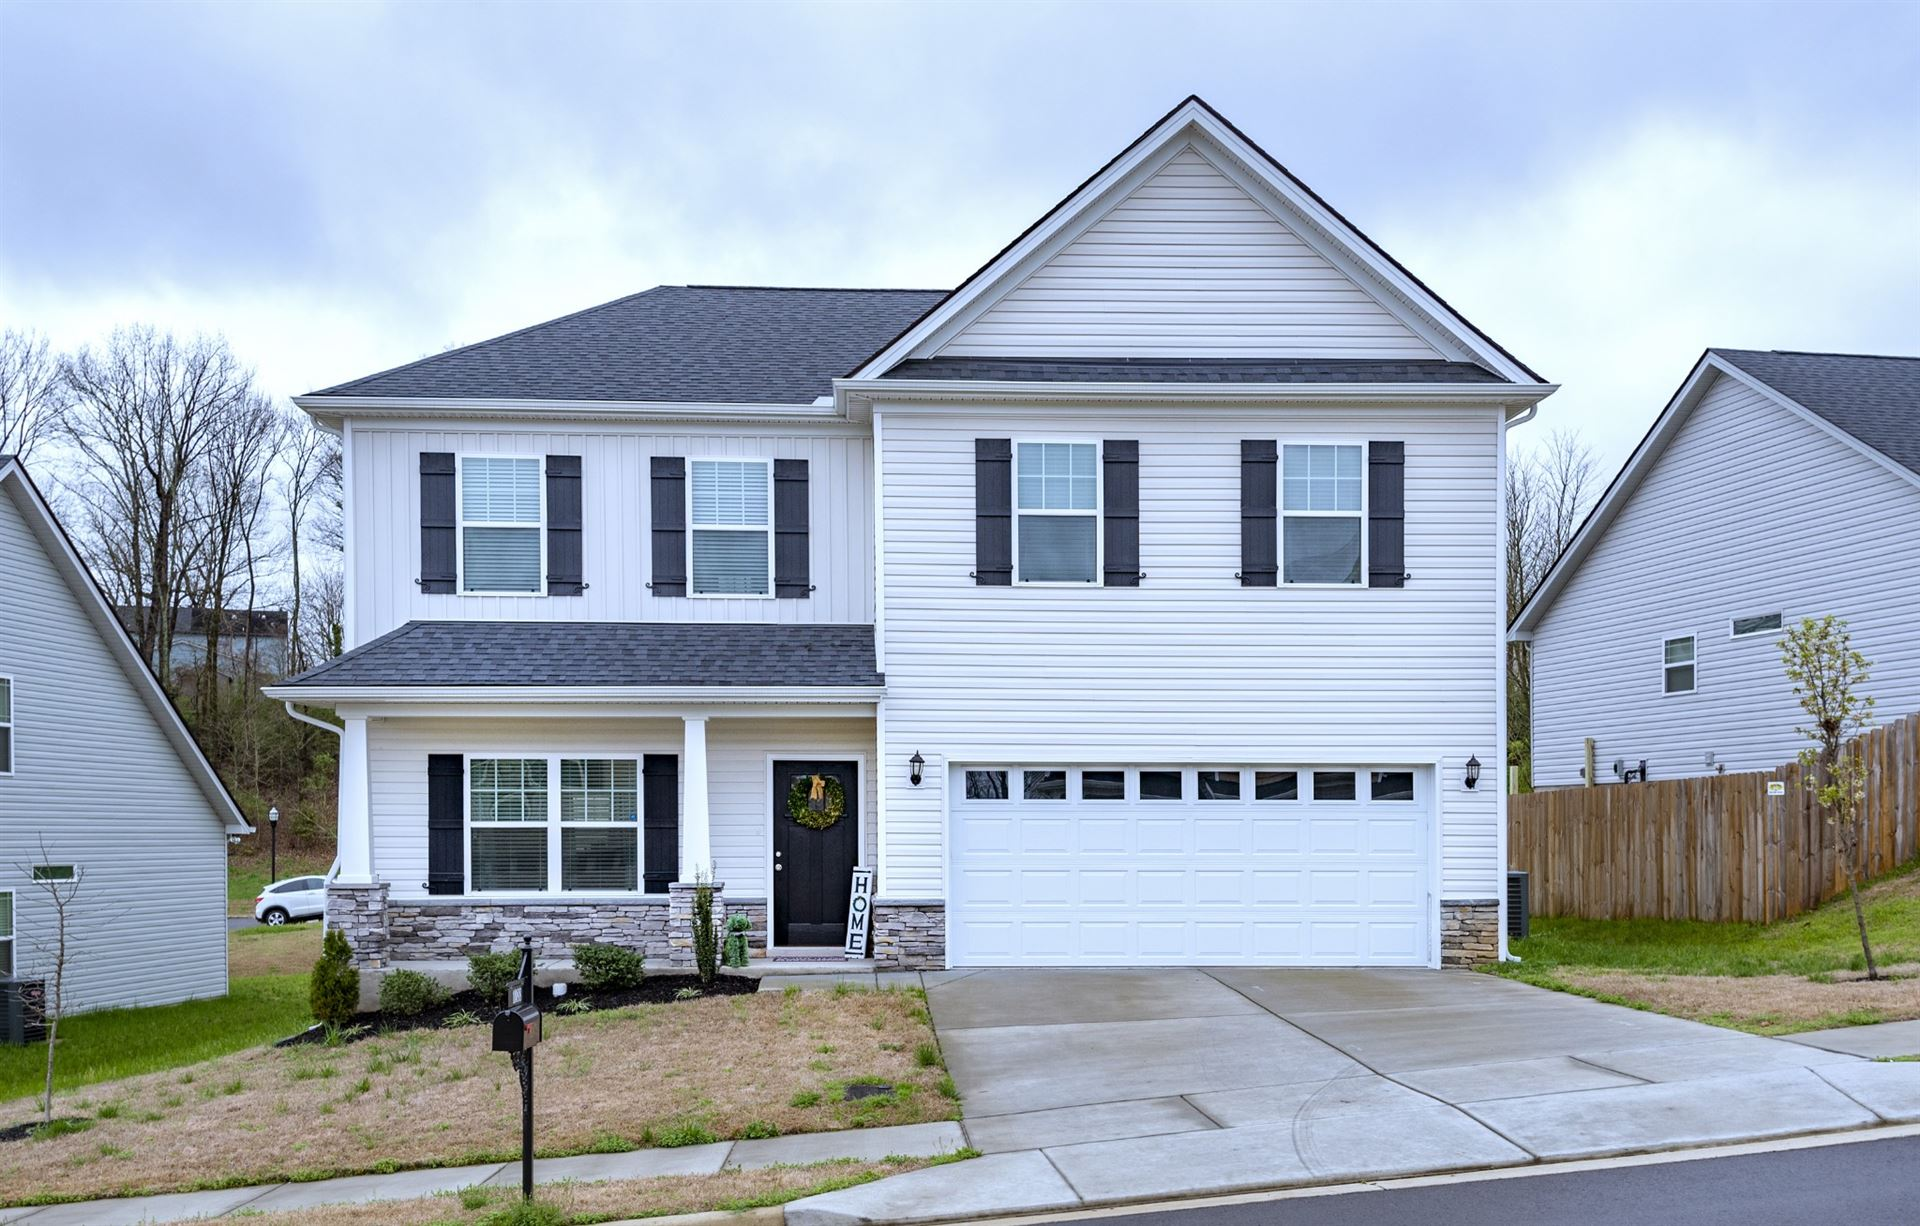 Photo of 1088 Lady Nashville Dr, Hermitage, TN 37076 (MLS # 2134843)